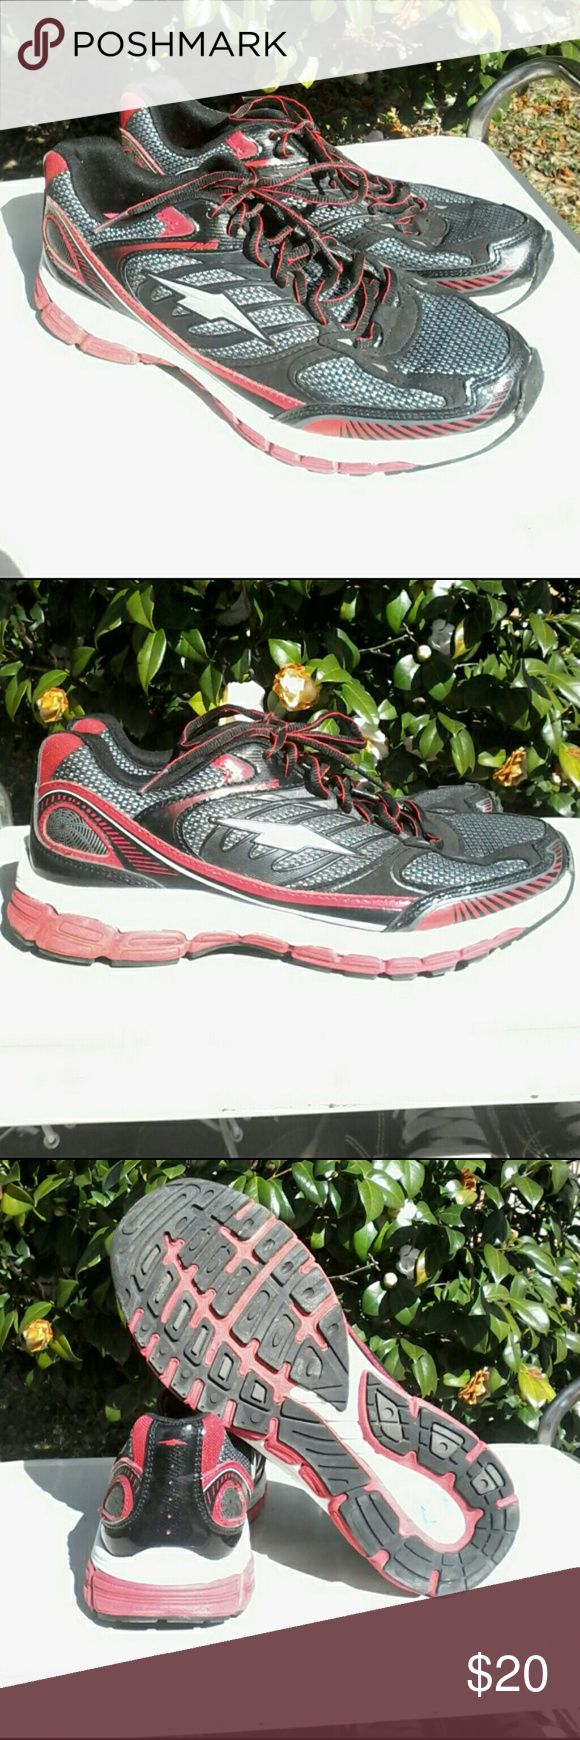 AVIA Cantilever running/ cross train sneakers Fabulous pair of very clean and sanitary pre-owned AVIA Cantilever runners /cross train shoes in size 9.5 these are super!... only obvious sign of limited use is soil on sole. Avia Shoes Sneakers